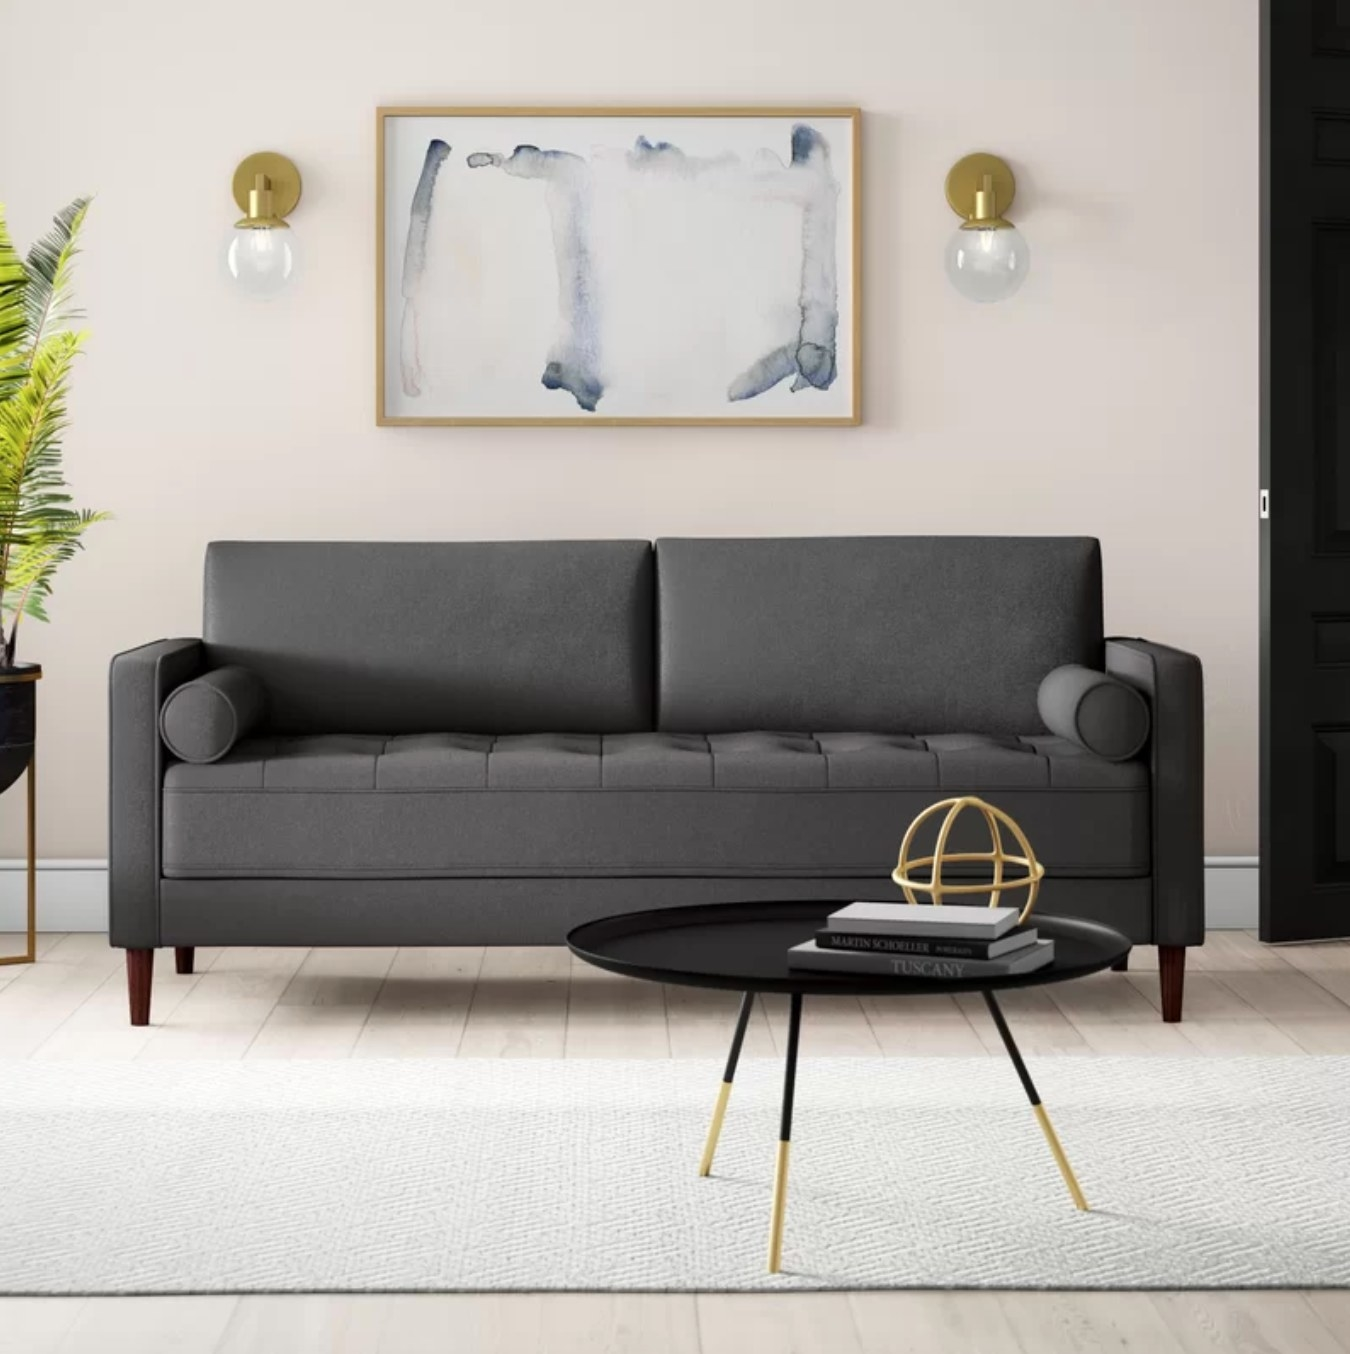 The arm sofa in heather gray polyester